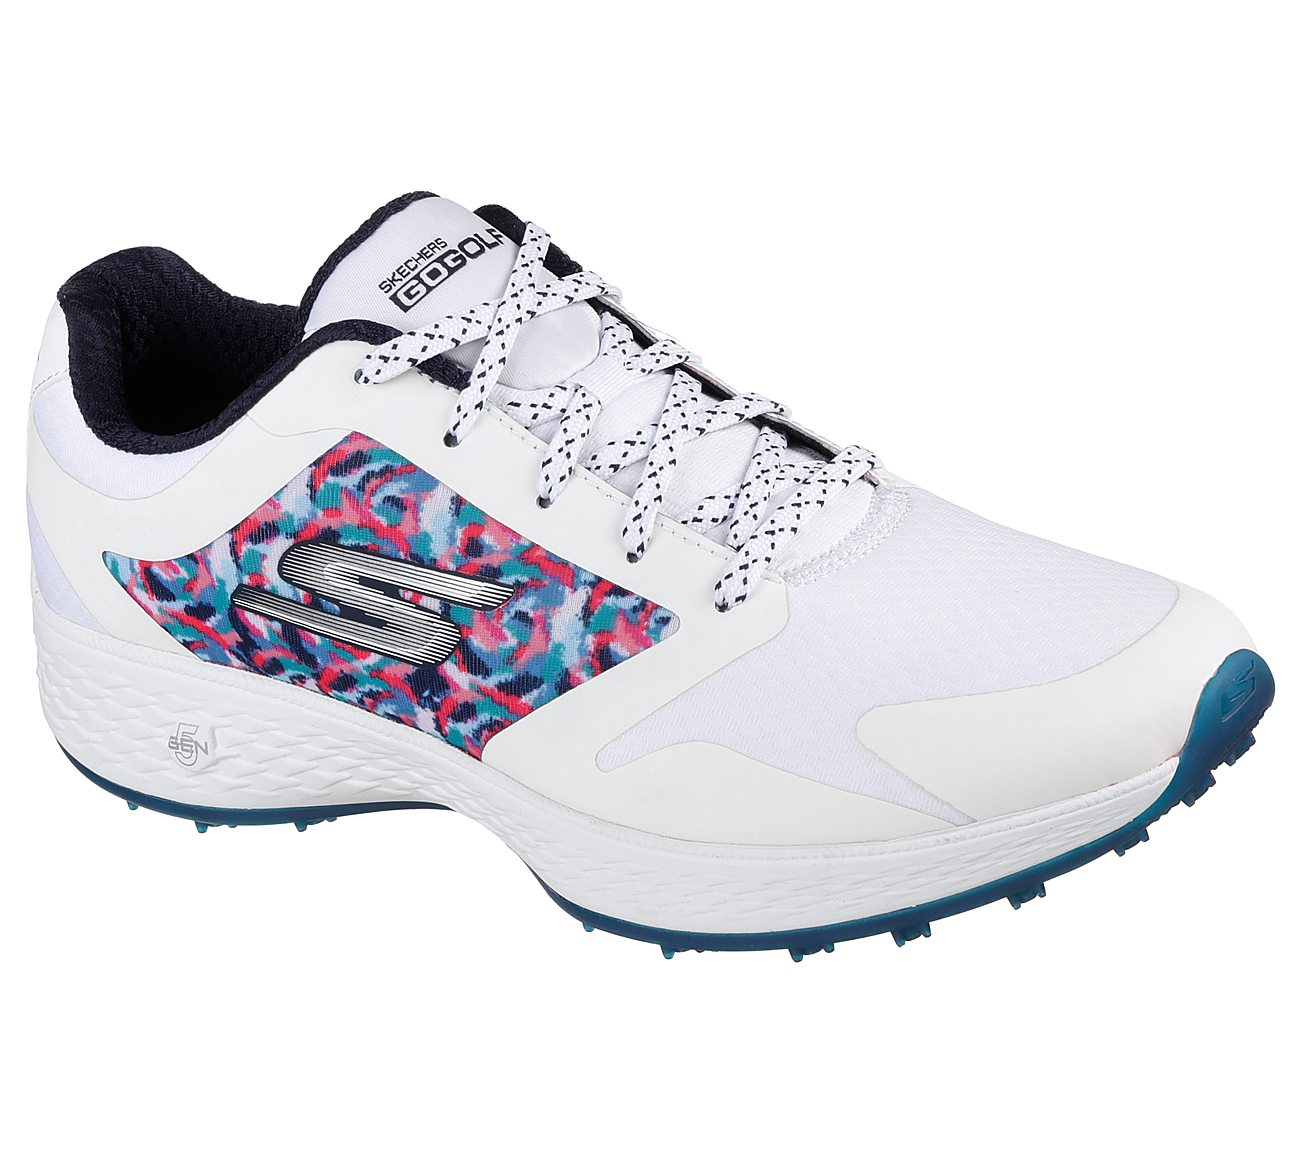 Skechers Women's Go Golf Eagle Golf Shoe - White/Navy